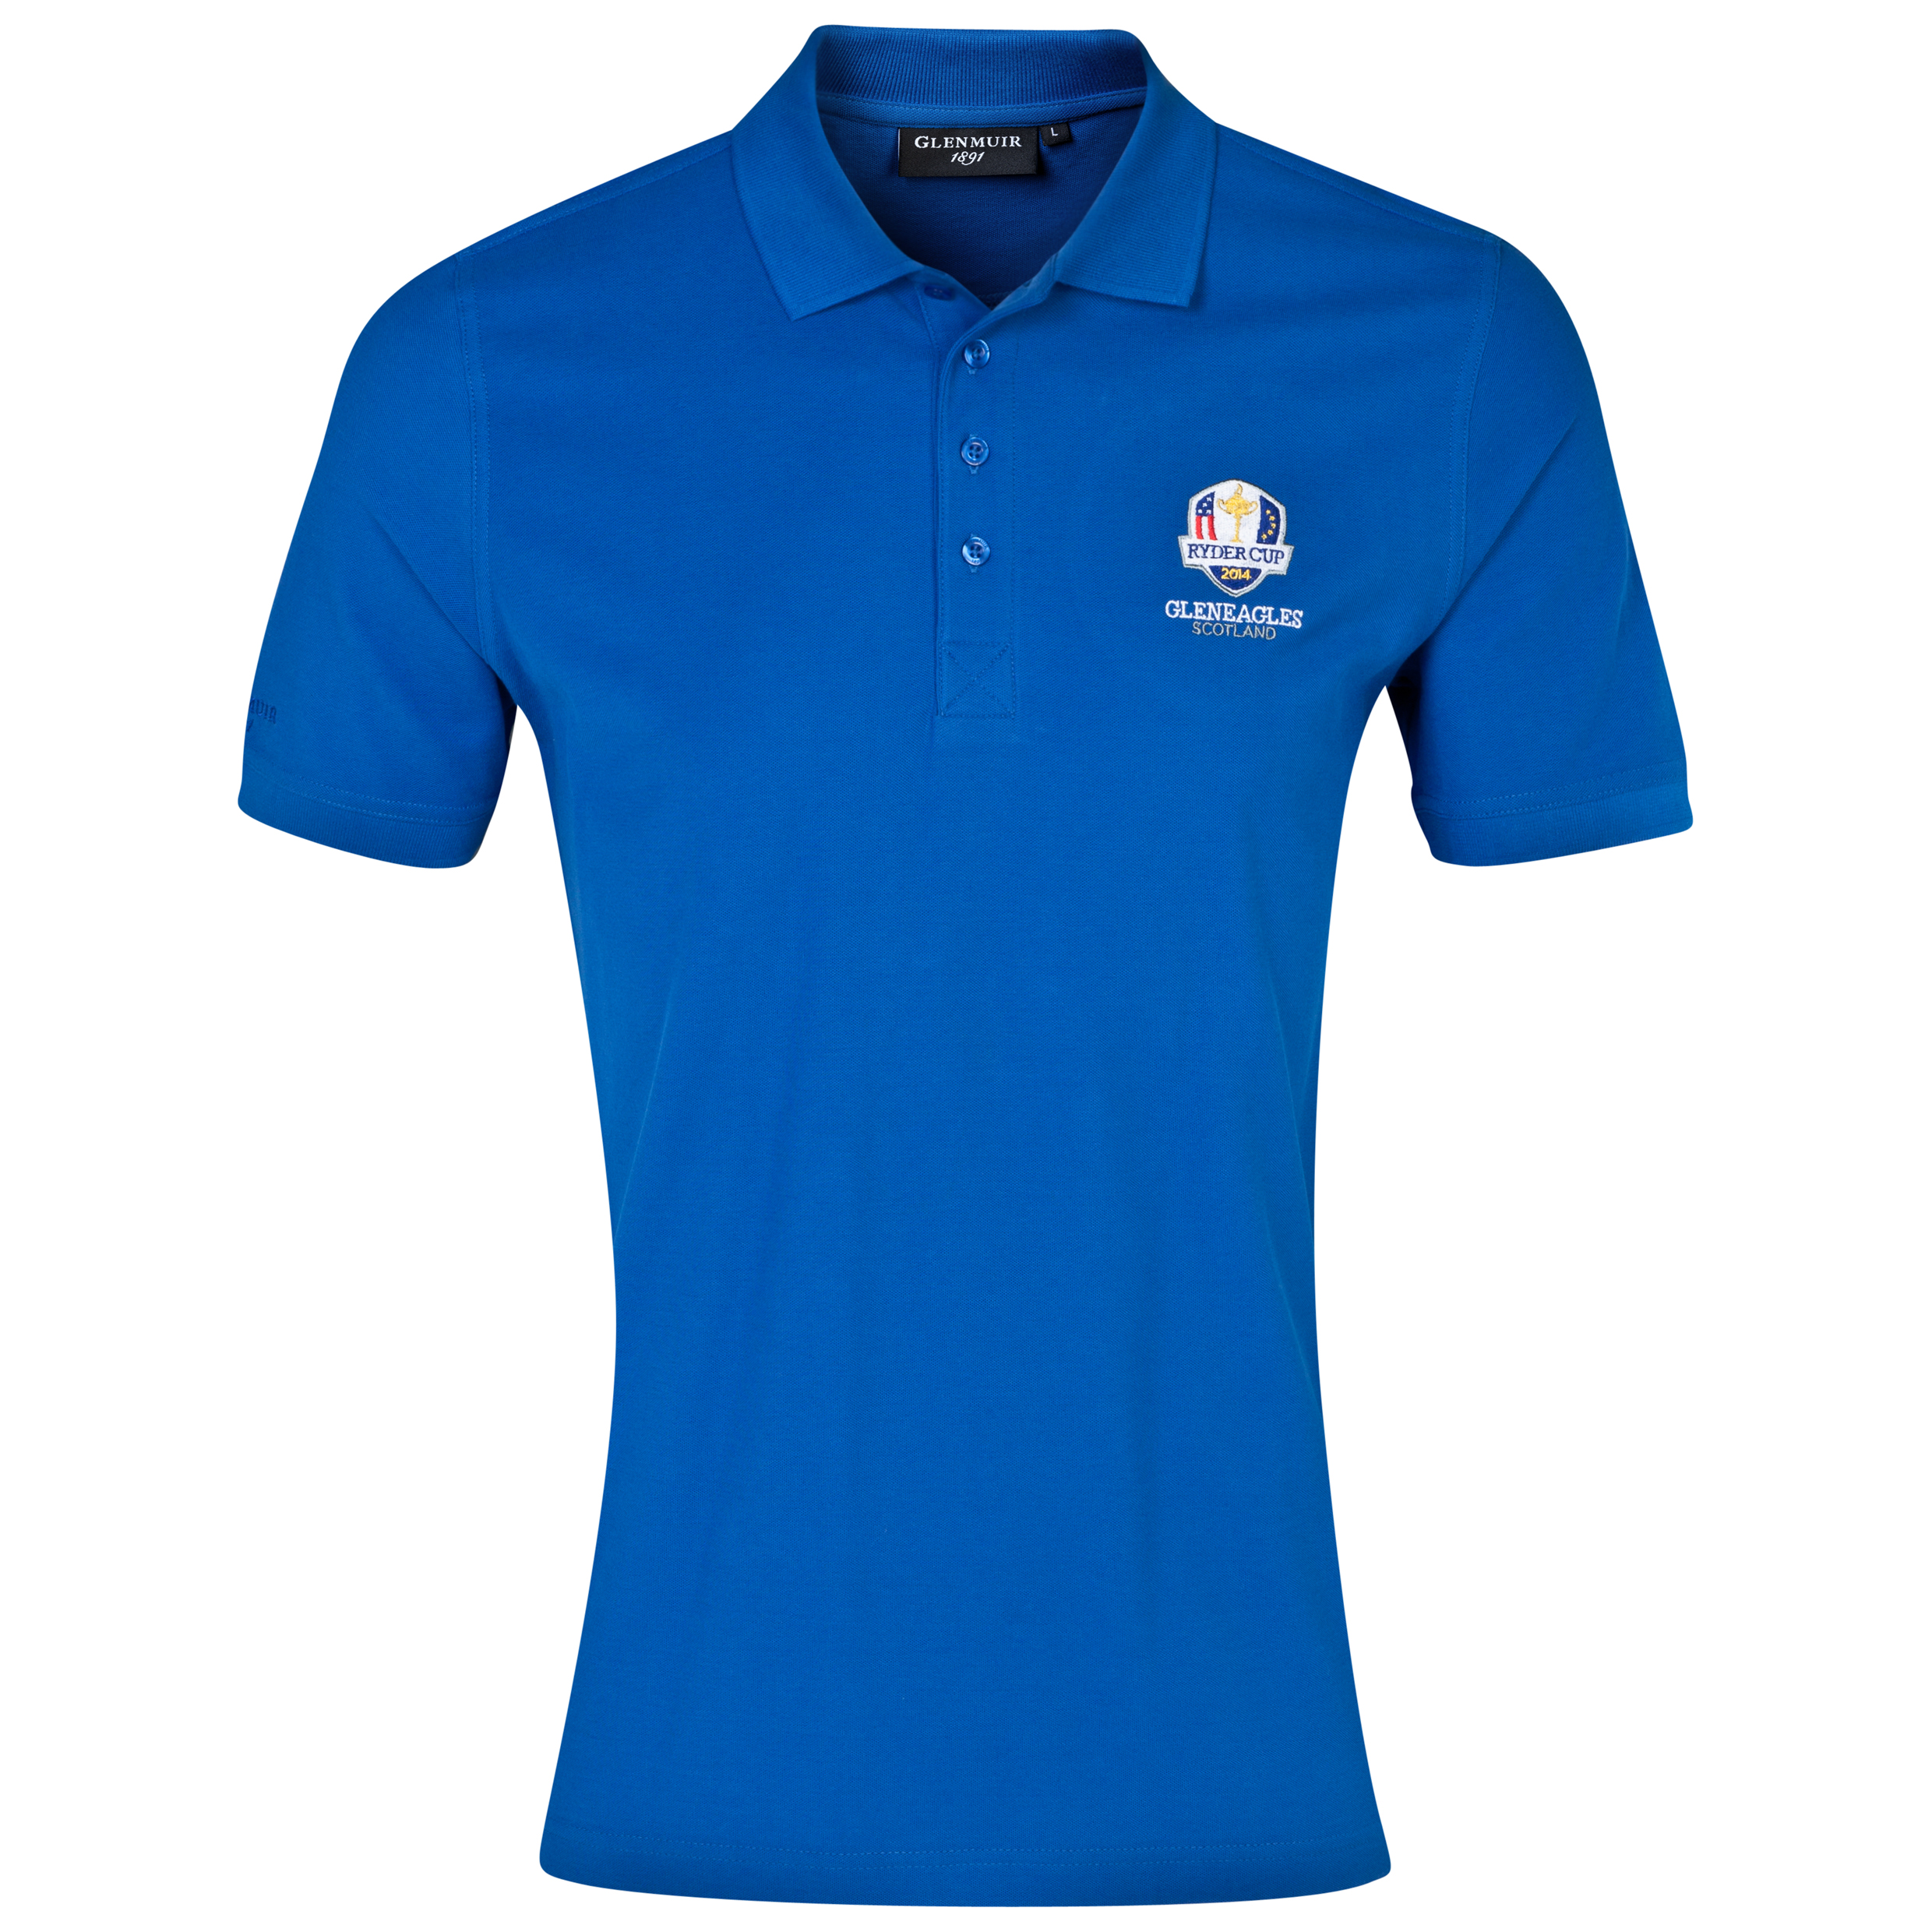 The 2014 Ryder Cup Glenmuir Kinloch Cotton Polo Blue